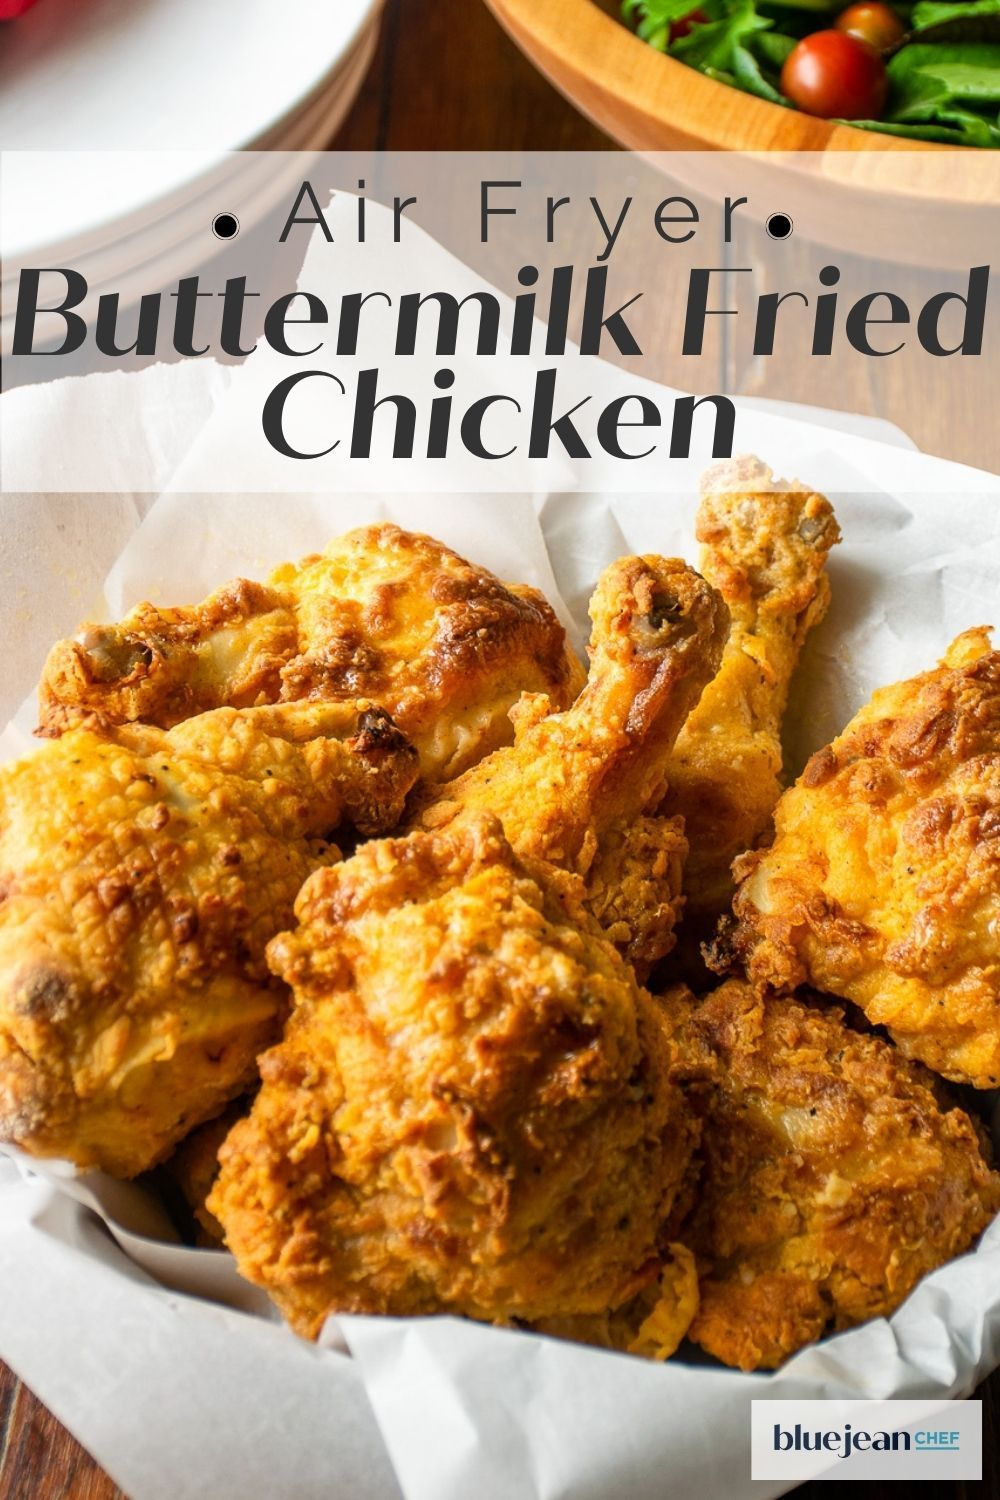 Air Fryer Fried Chicken Blue Jean Chef Meredith Laurence Recipe In 2020 Homemade Fried Chicken Air Fryer Fried Chicken Fried Chicken